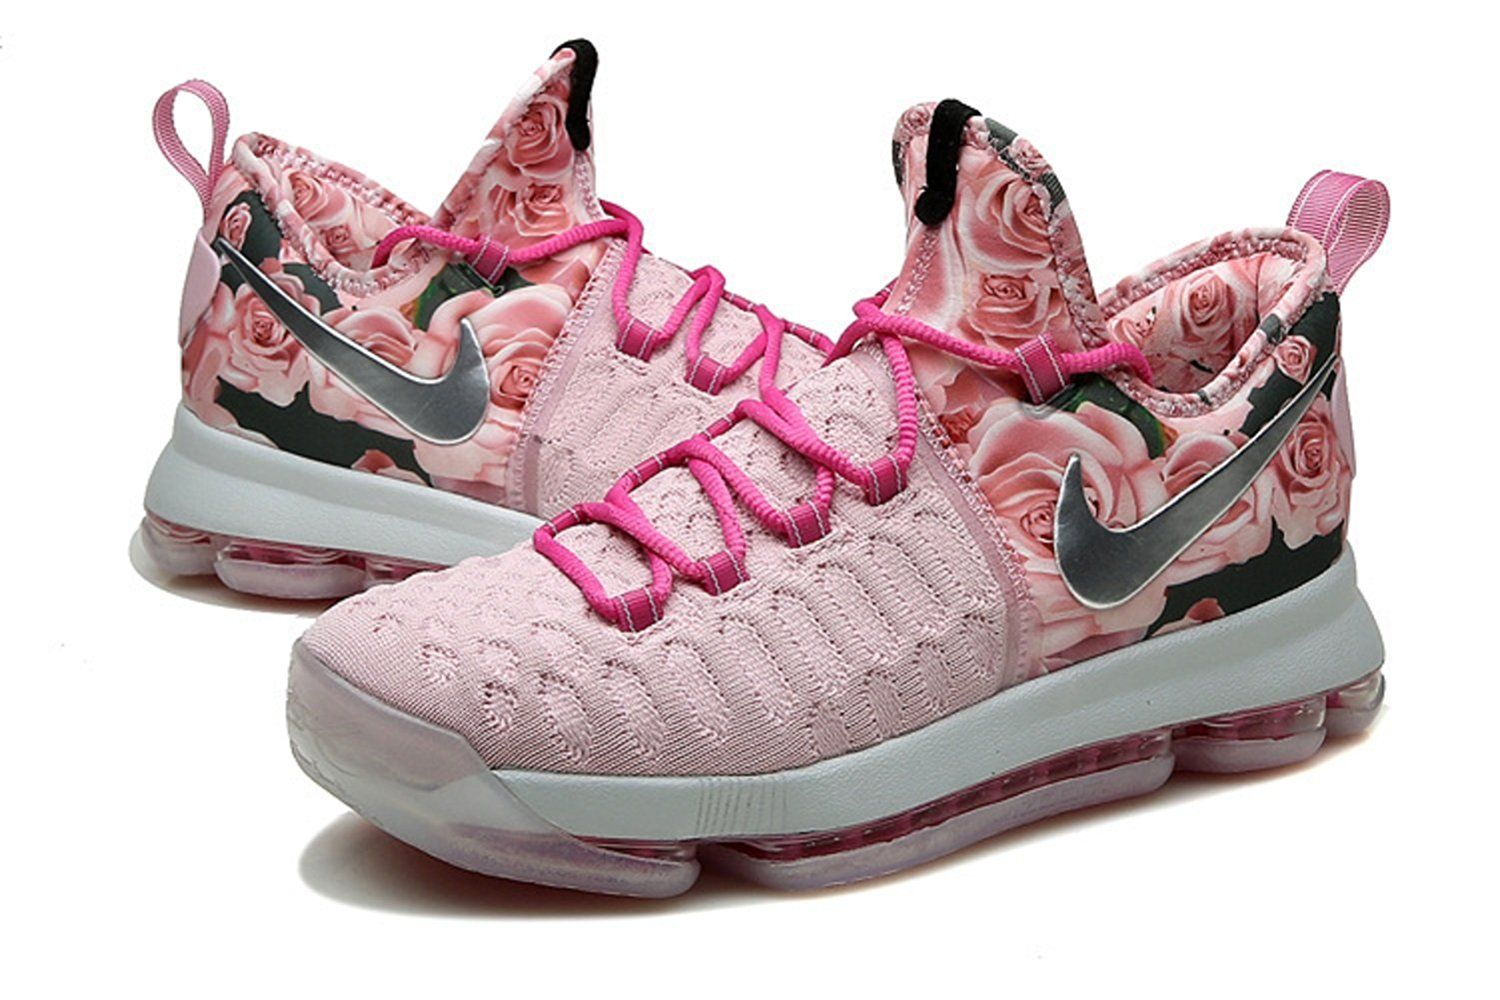 addca13929e womens Nike Zoom KD IX 9 Basketball Shoes (6.5)    See this great image   Basketball  shoes